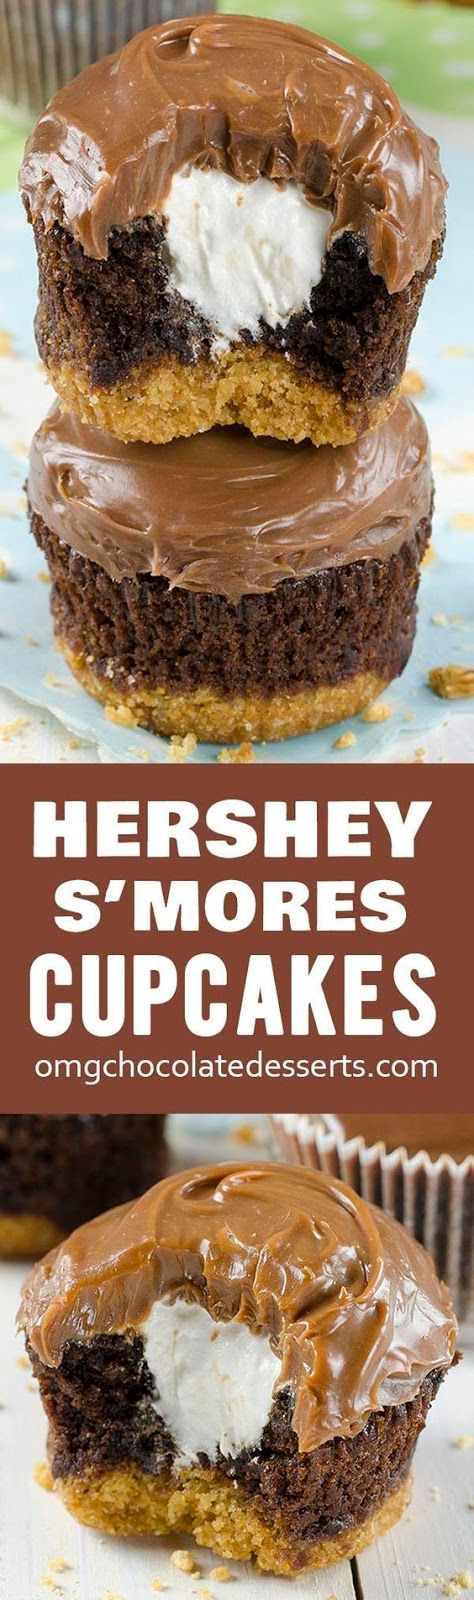 Hershey's S'mores Cupcakes – delicious chocolate cupcakes with a graham cracker crust, filled with light and fluffy marshmallow filling and topped with milk chocolate ganache